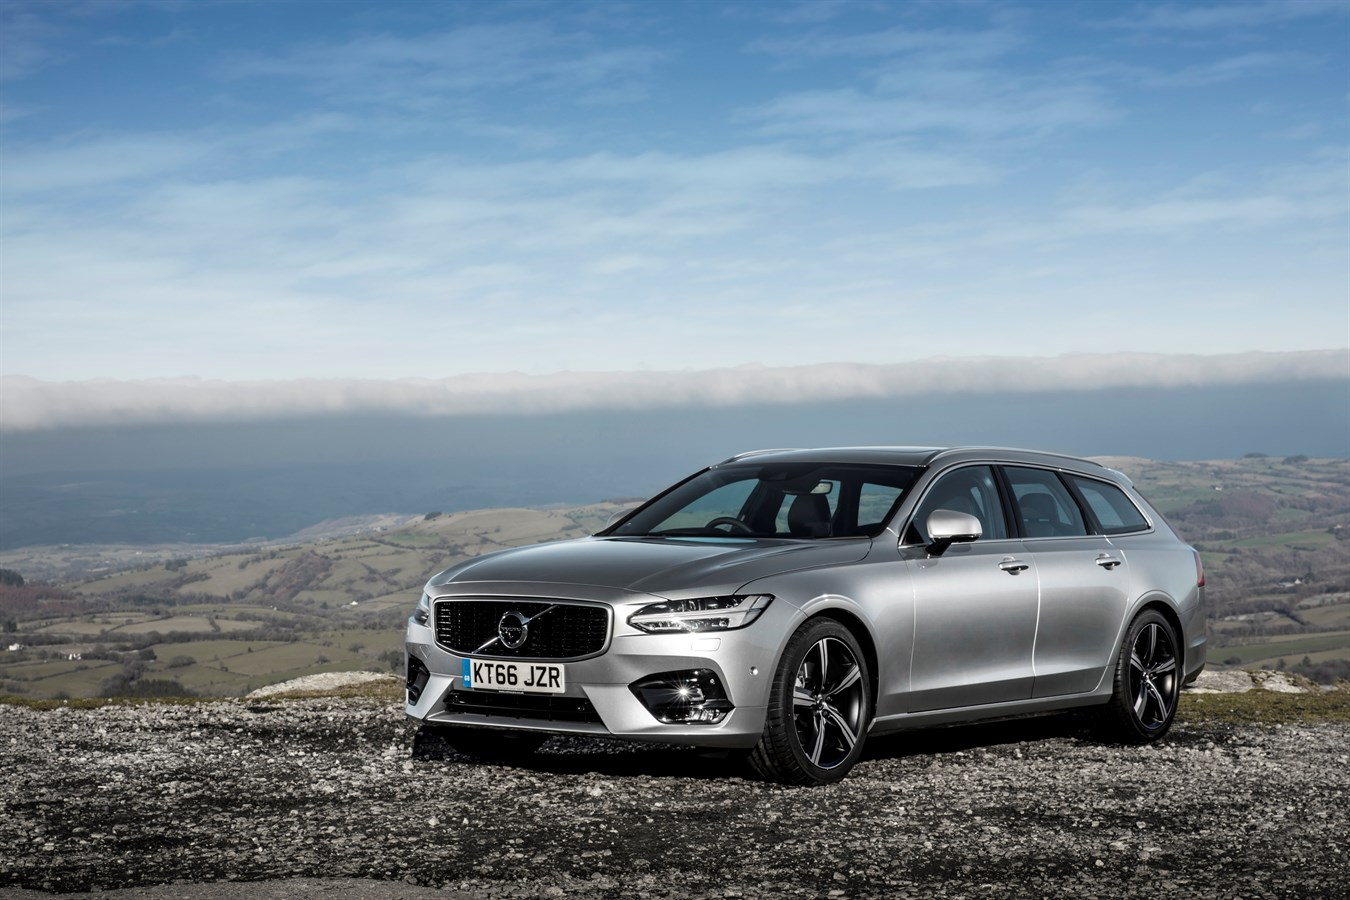 New T4 petrol engine joins the Volvo S90 and V90 ranges - Volvo Car UK Media Newsroom